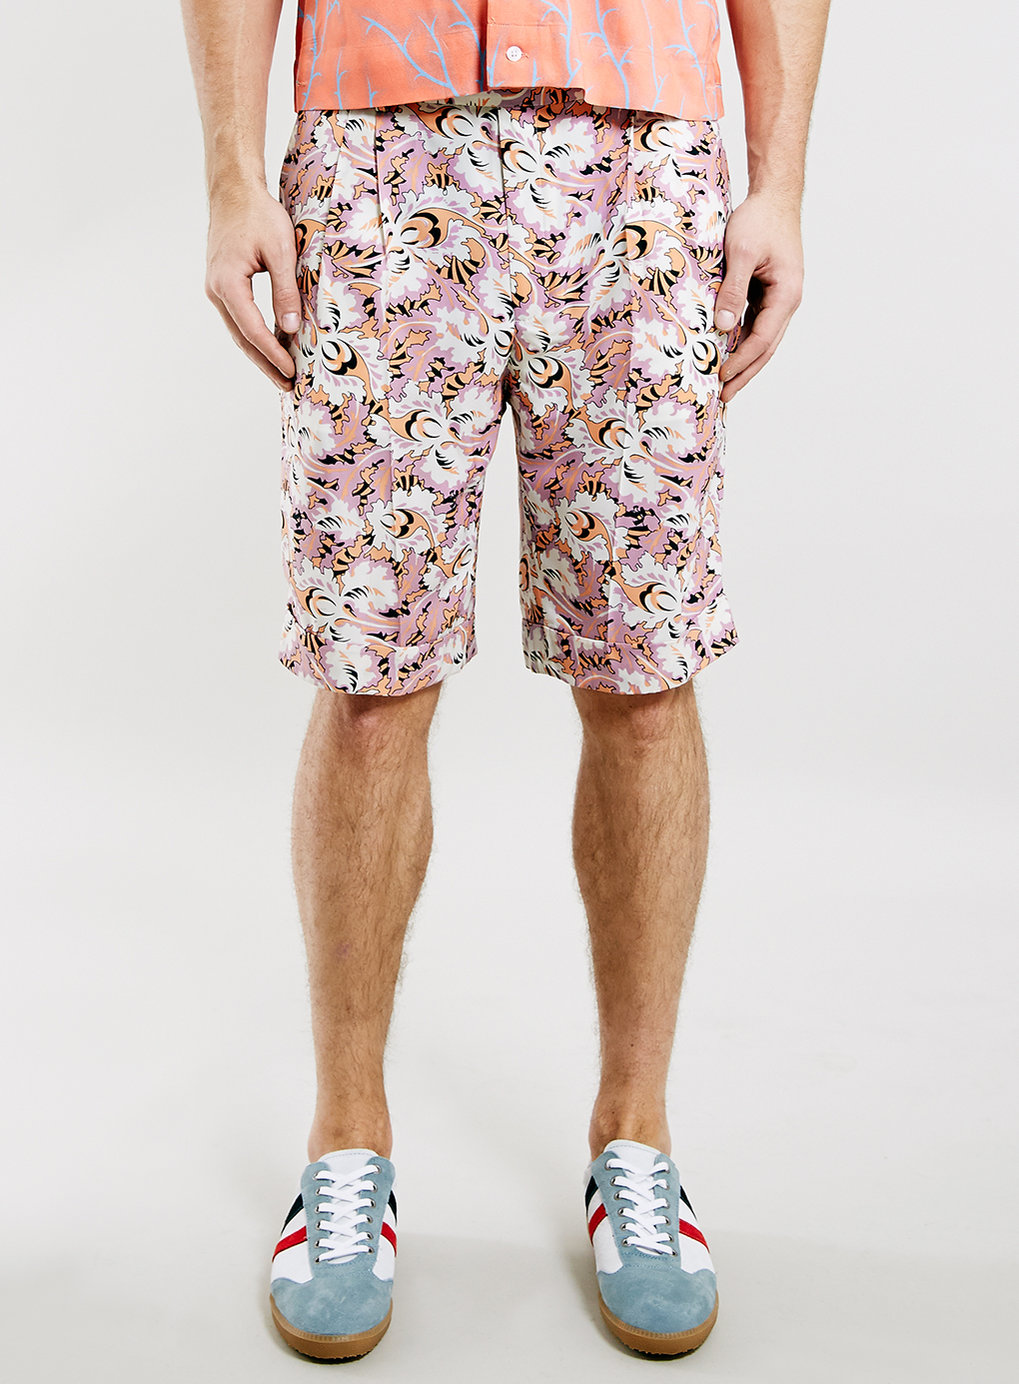 Topman Tmd Ornate Print Shorts | Men's Prints